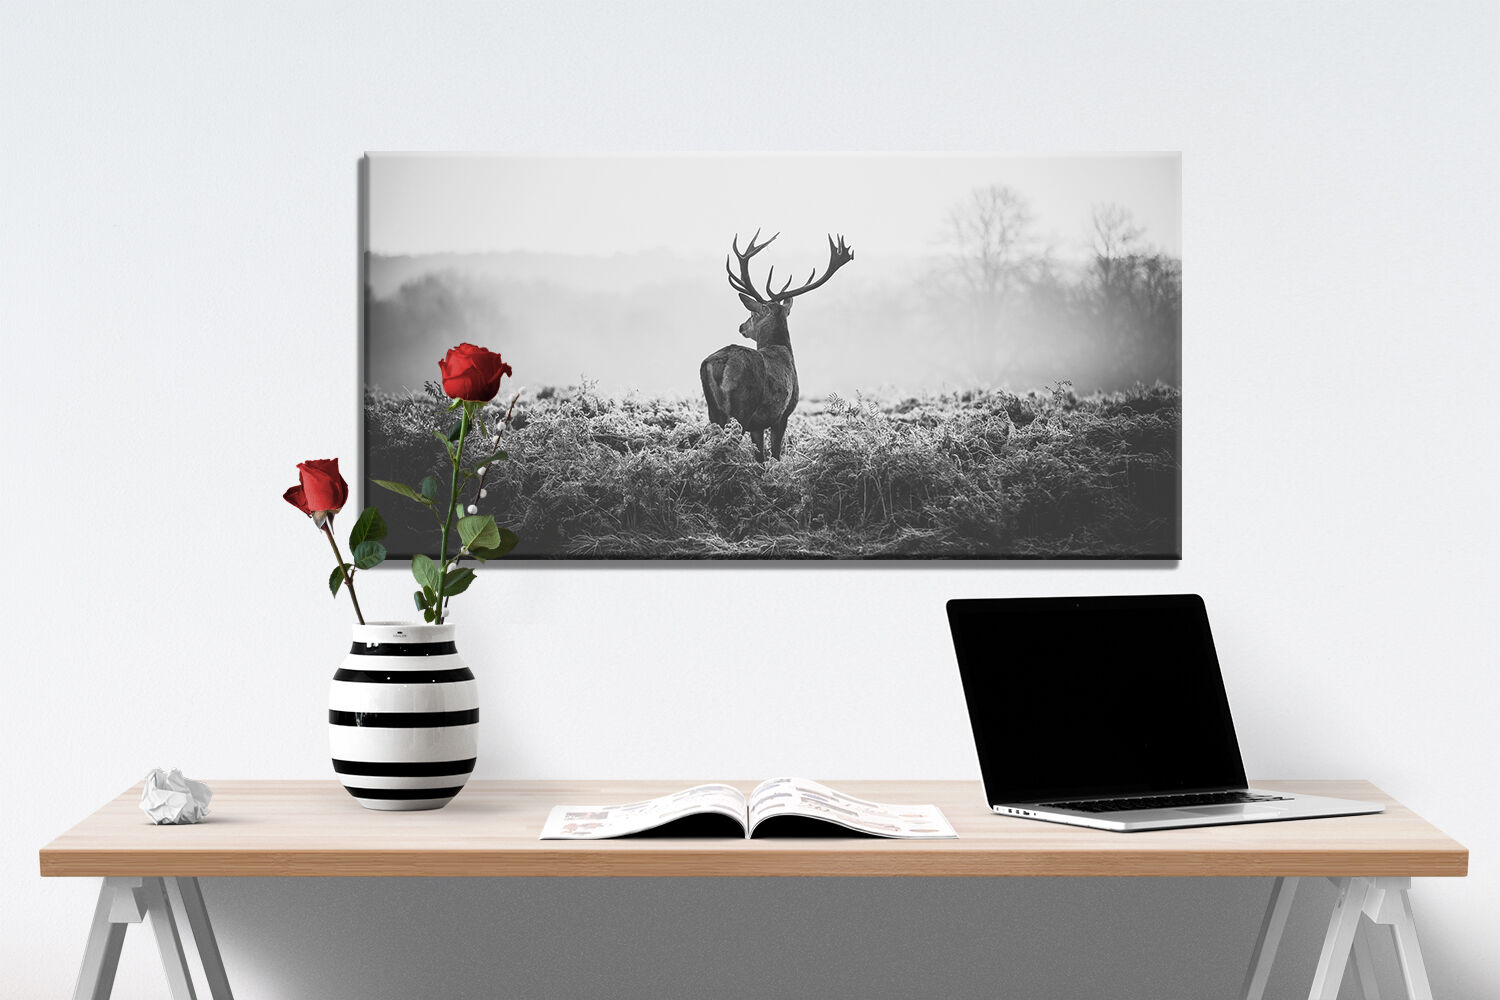 leinwand bild hirsch s w 100x50cm tier natur 1 teiler wandbild xxl ebay. Black Bedroom Furniture Sets. Home Design Ideas